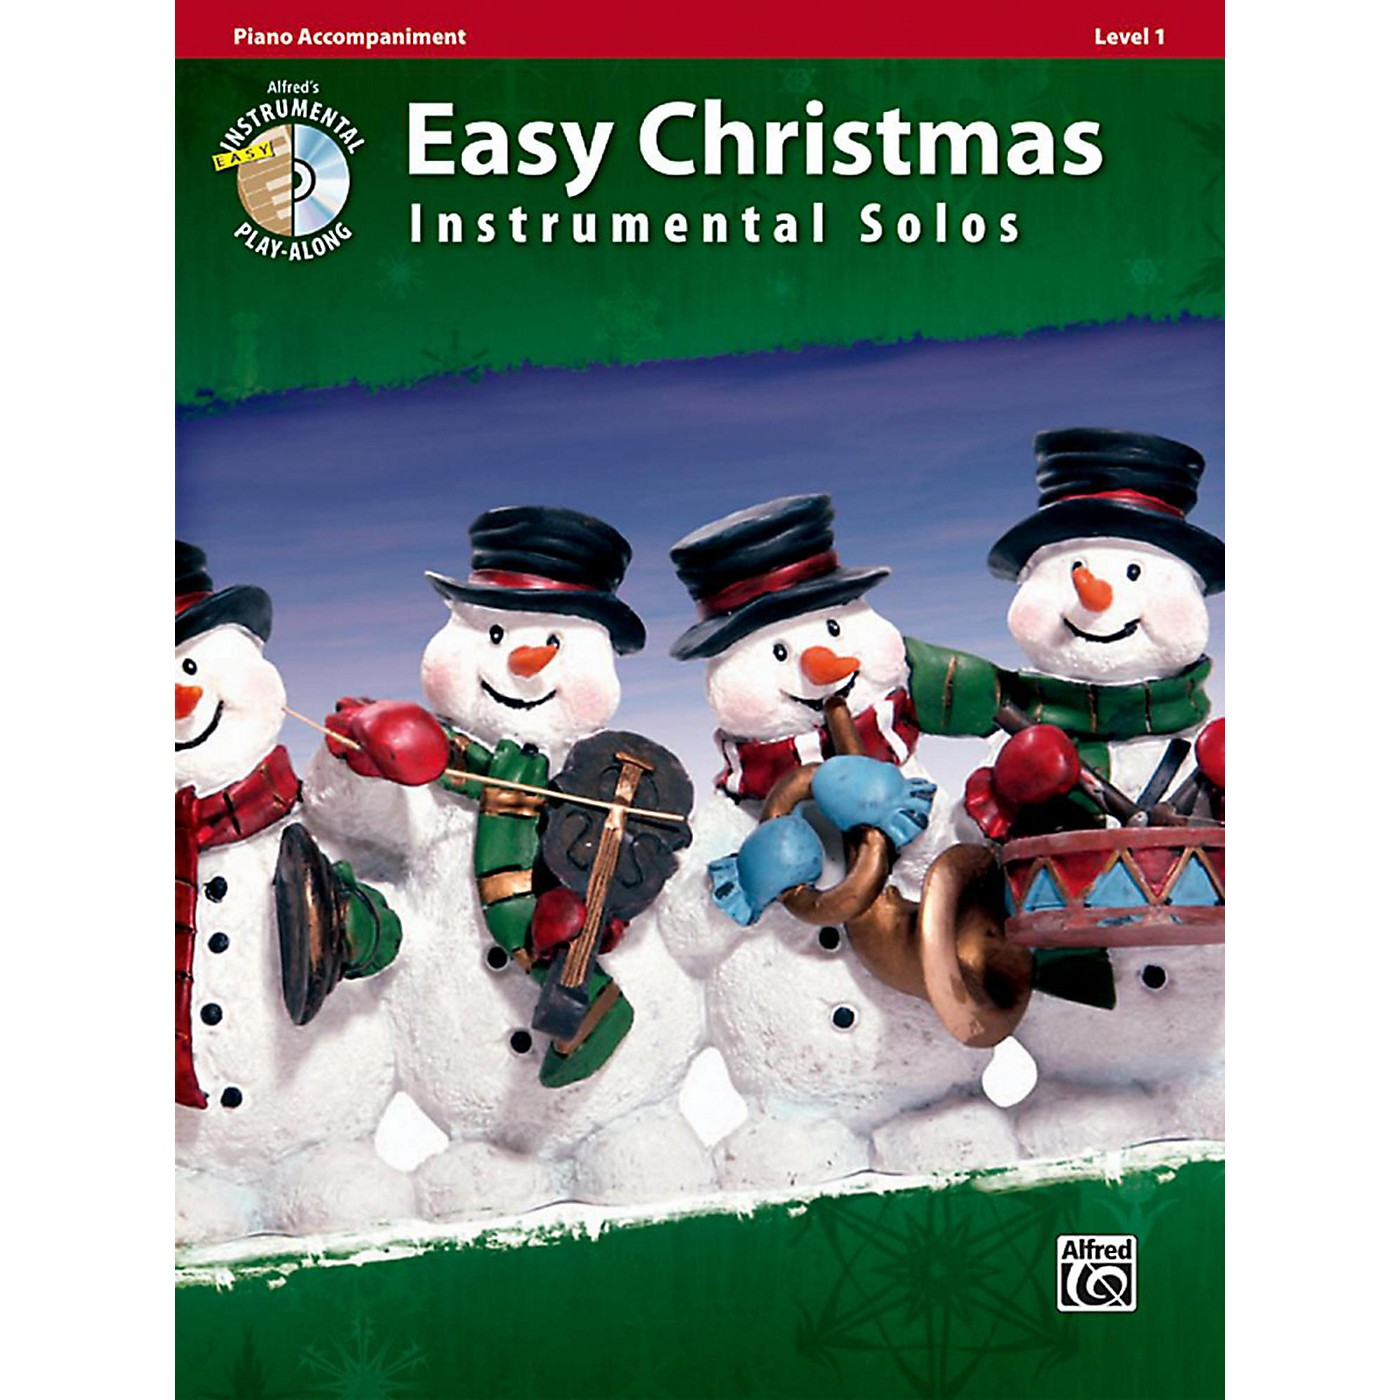 Alfred Easy Christmas Instrumental Solos Level 1 Piano Acc. Book & CD thumbnail